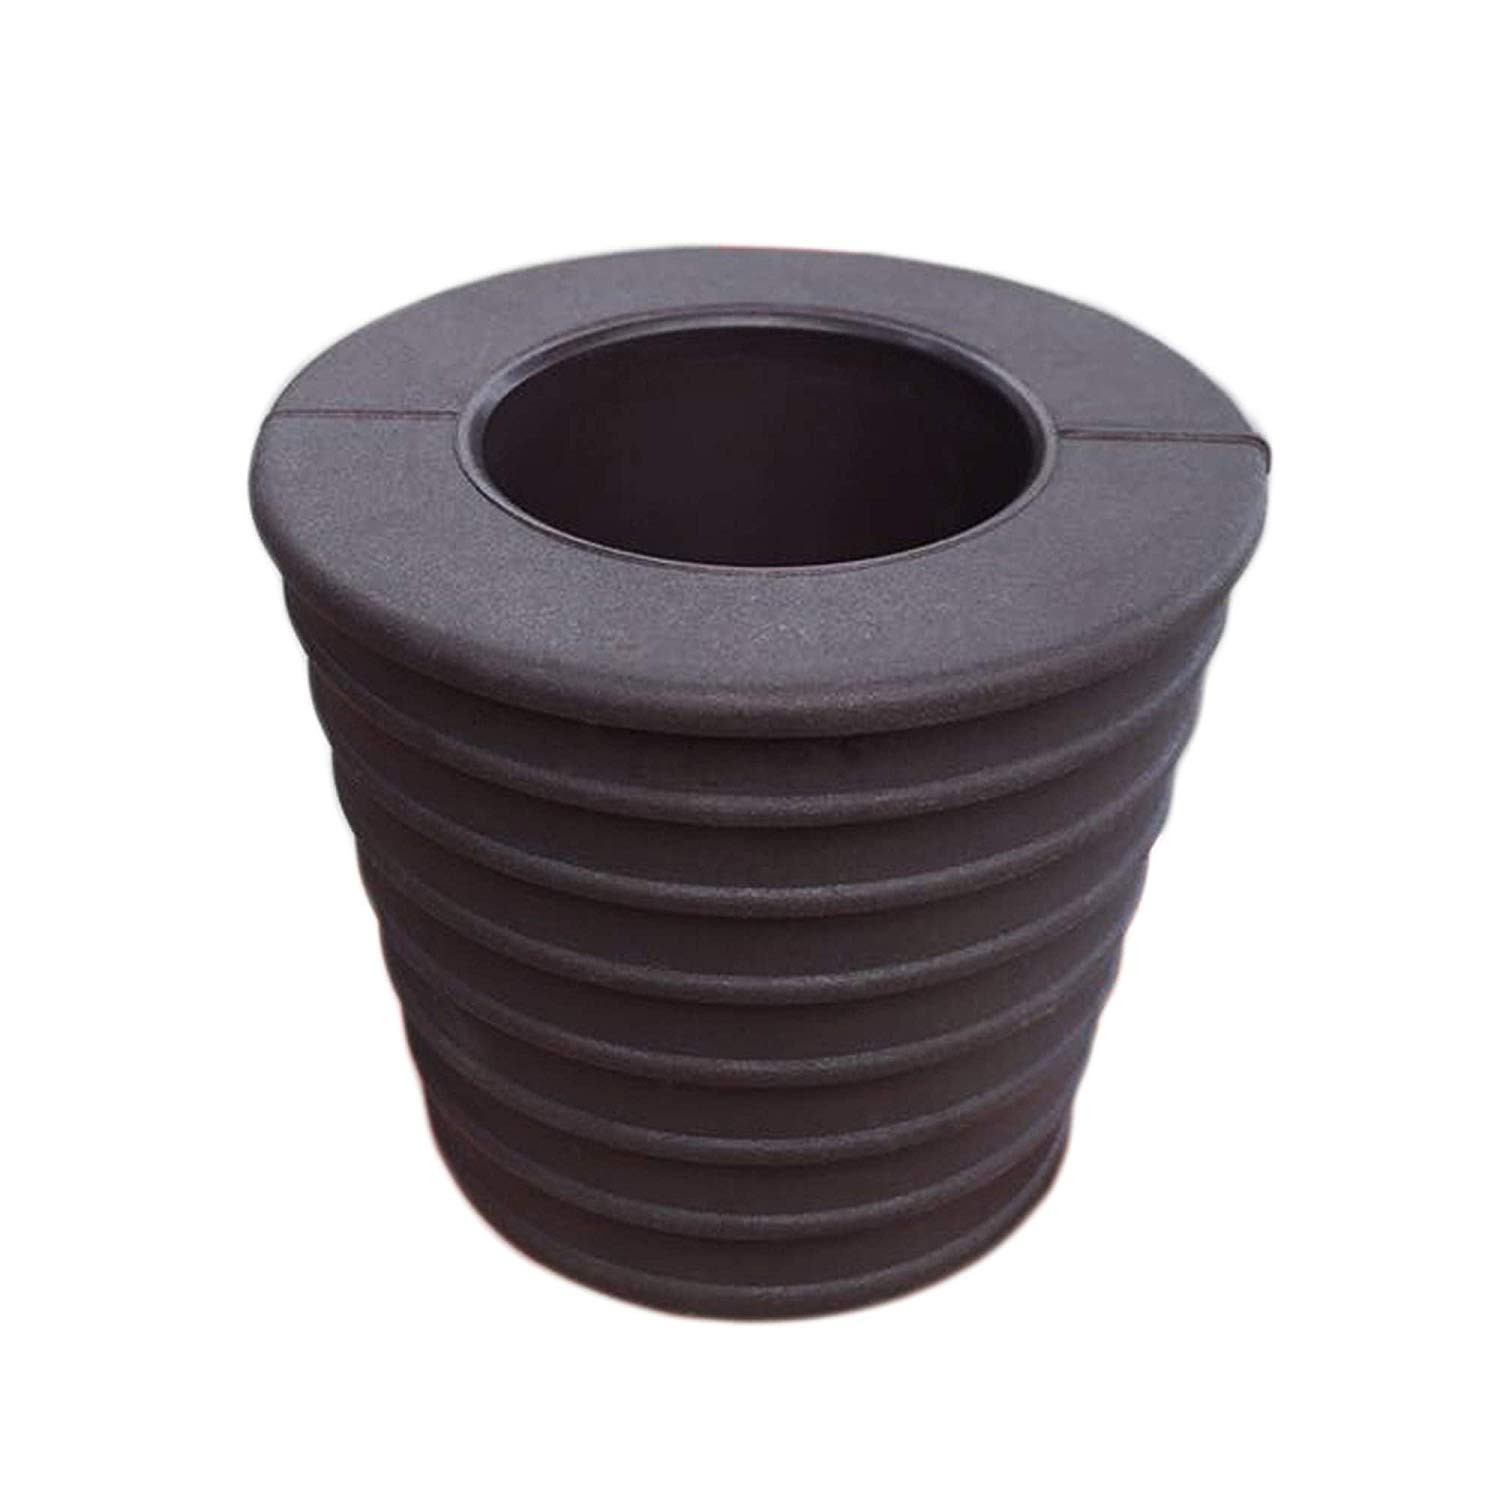 ceramic umbrella stand vase of amazon com myard windproof umbrella cone wedge spacer fits patio for amazon com myard windproof umbrella cone wedge spacer fits patio table hole opening or base 2 to 2 5 inch pole diameter 1 1 2 38mm